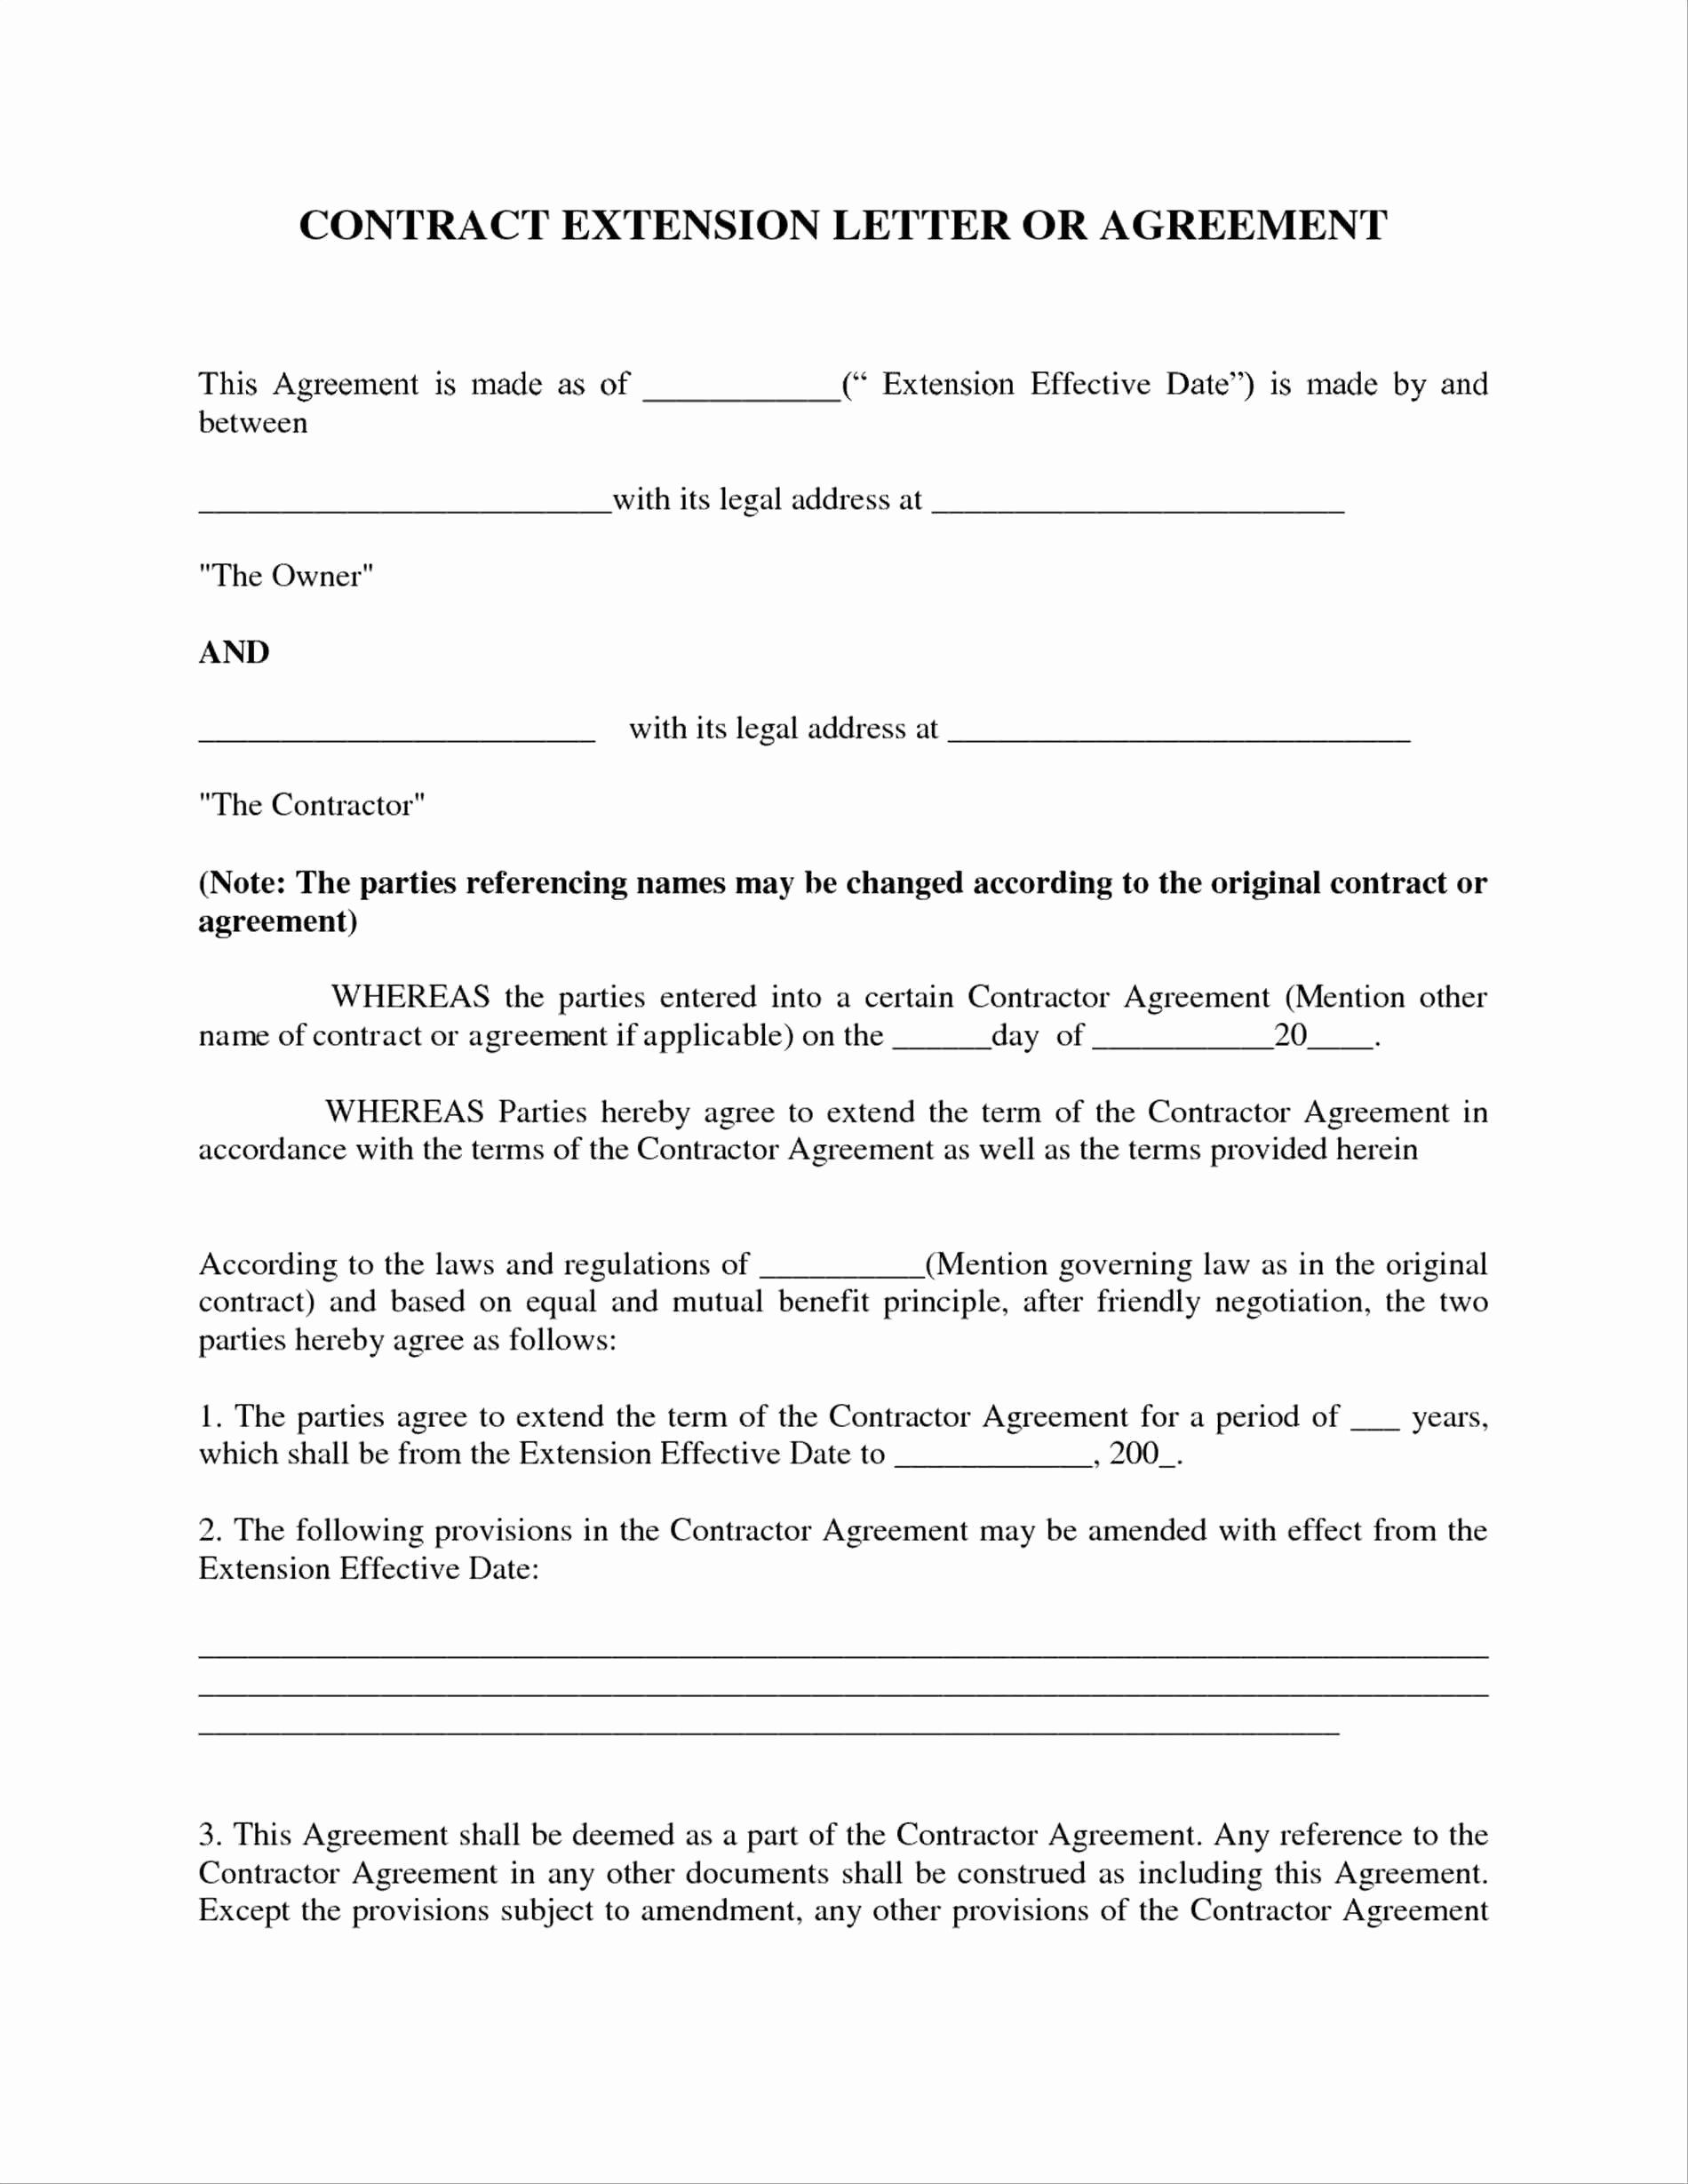 Simple Settlement Agreement Luxury Agreement Letter Between Two Parties Lettering Agreement Letter Letter Format